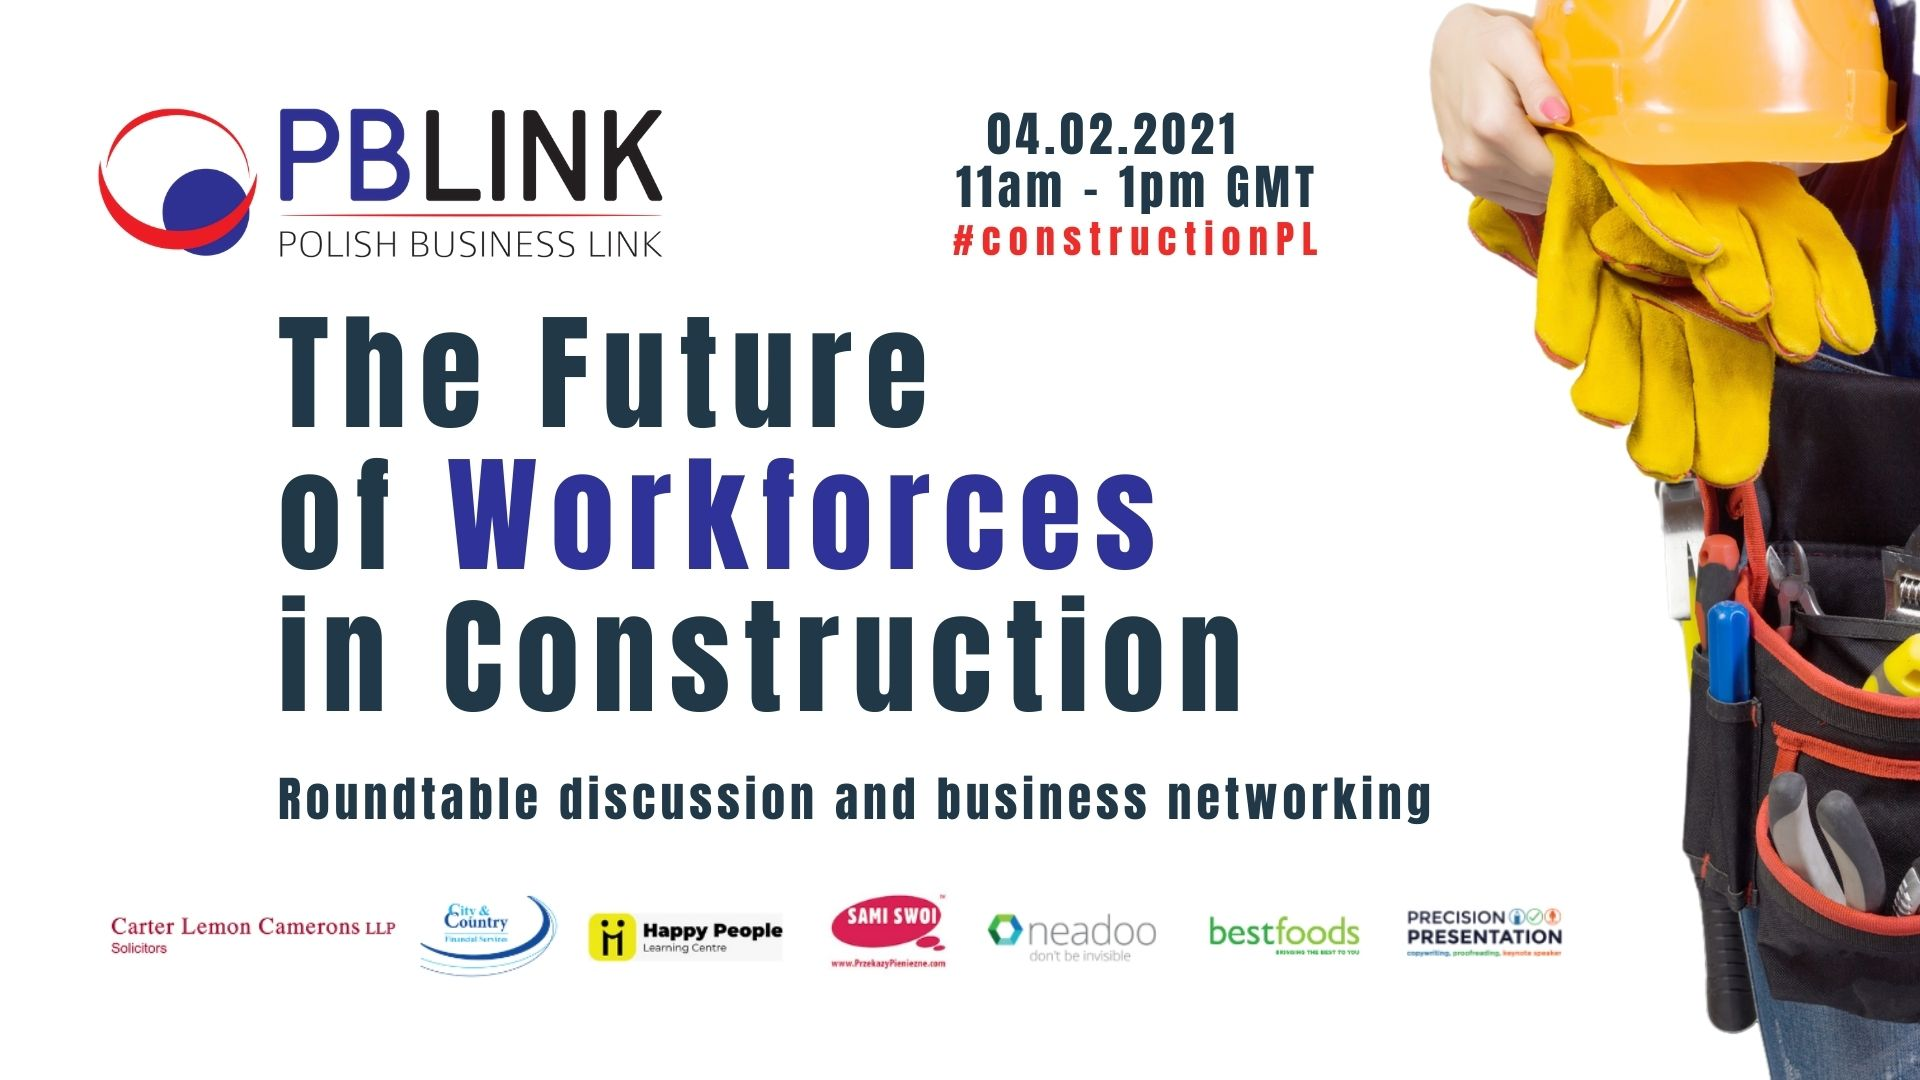 PBLINK Insights on the future of Workforces in Construction in the UK